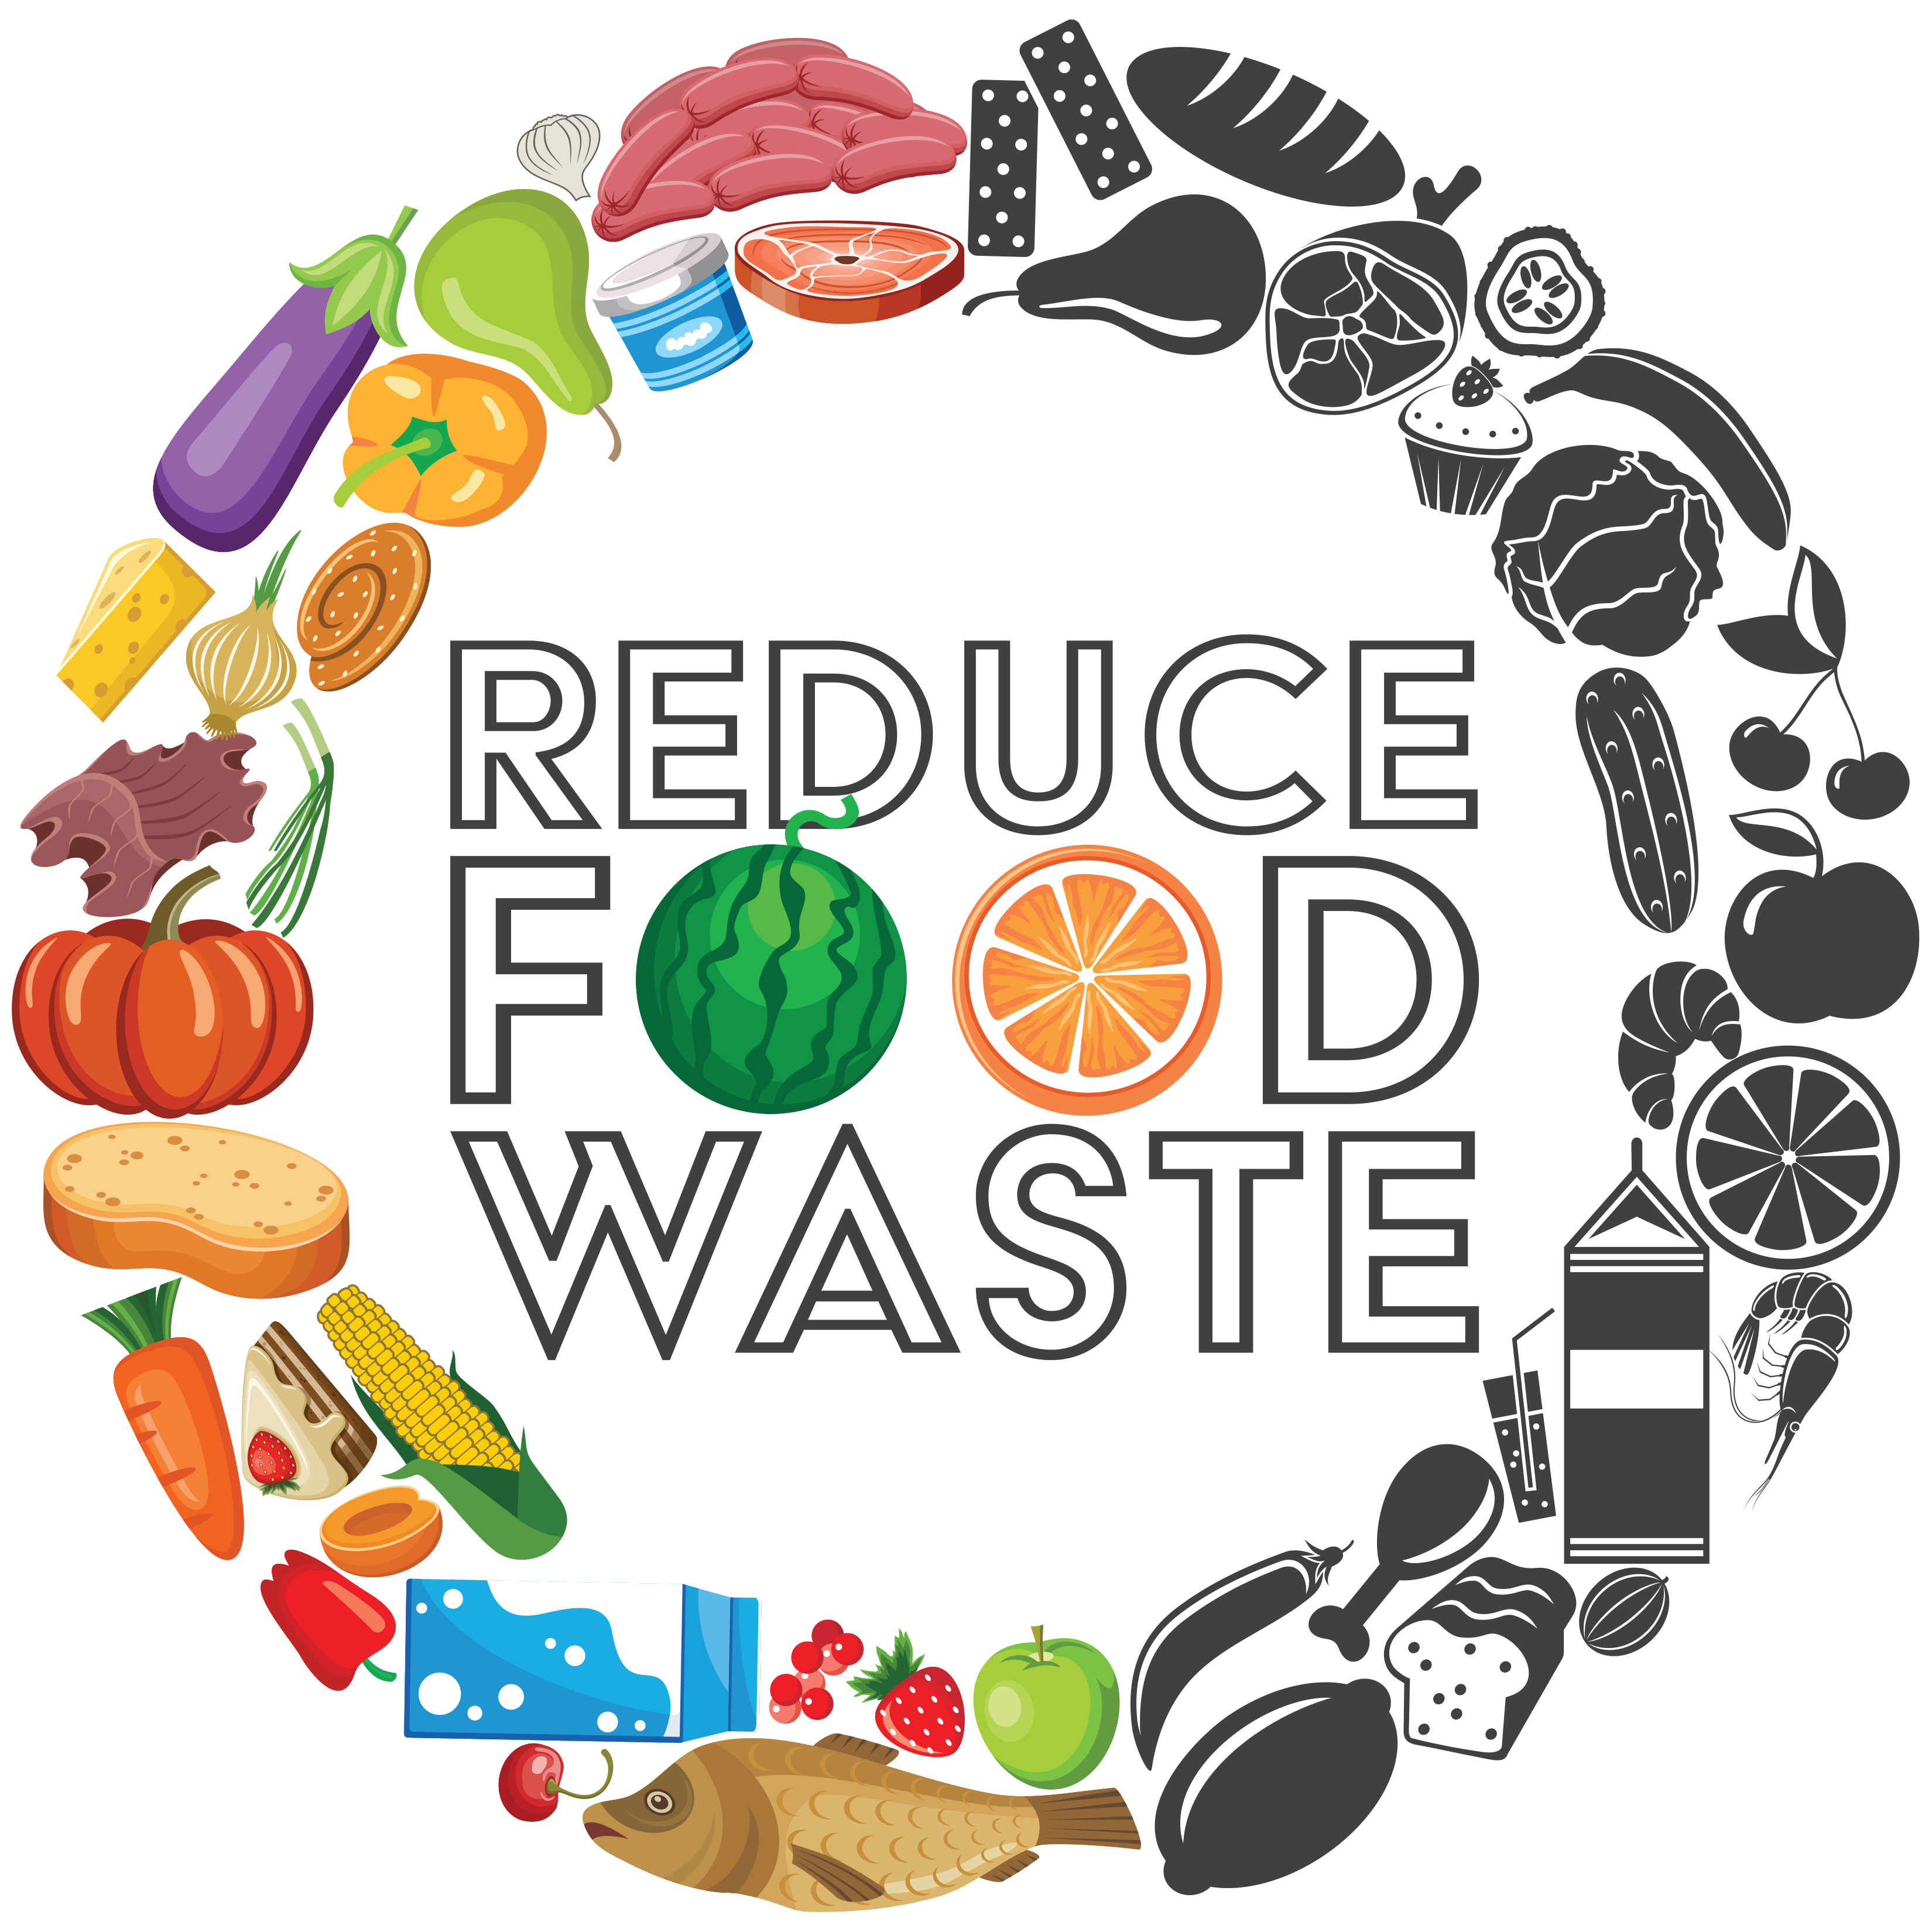 FoodWasteIMages-3.jpg